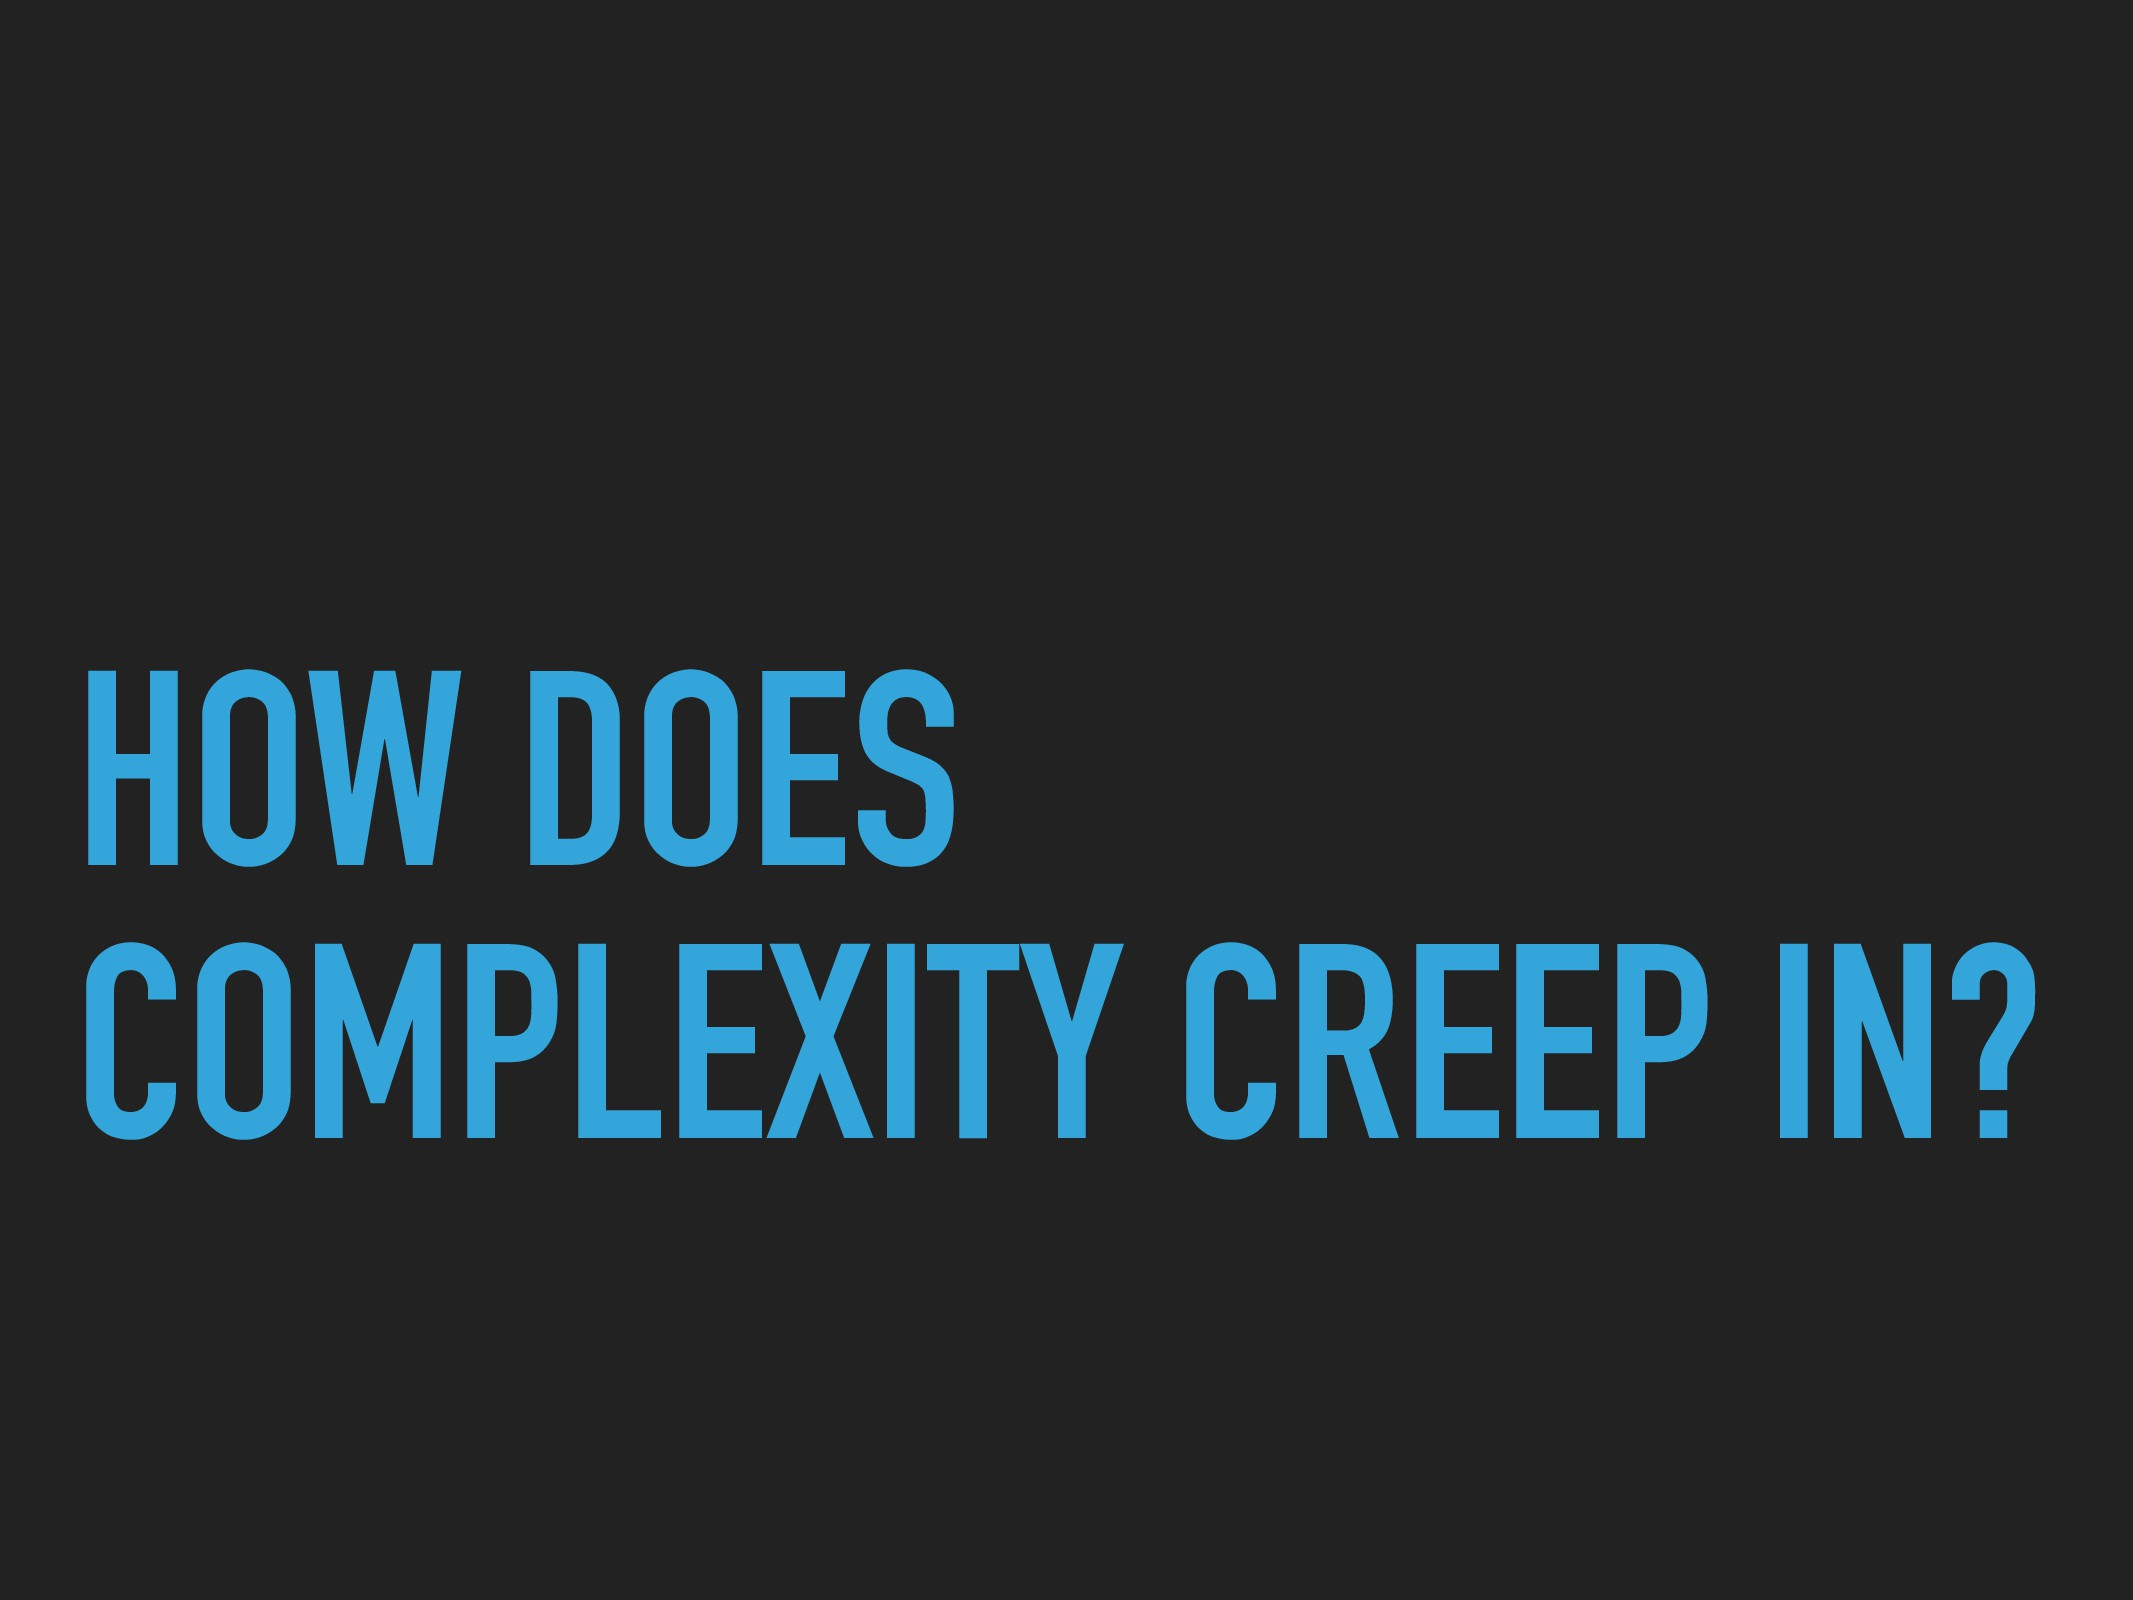 HOW DOES COMPLEXITY CREEP IN?